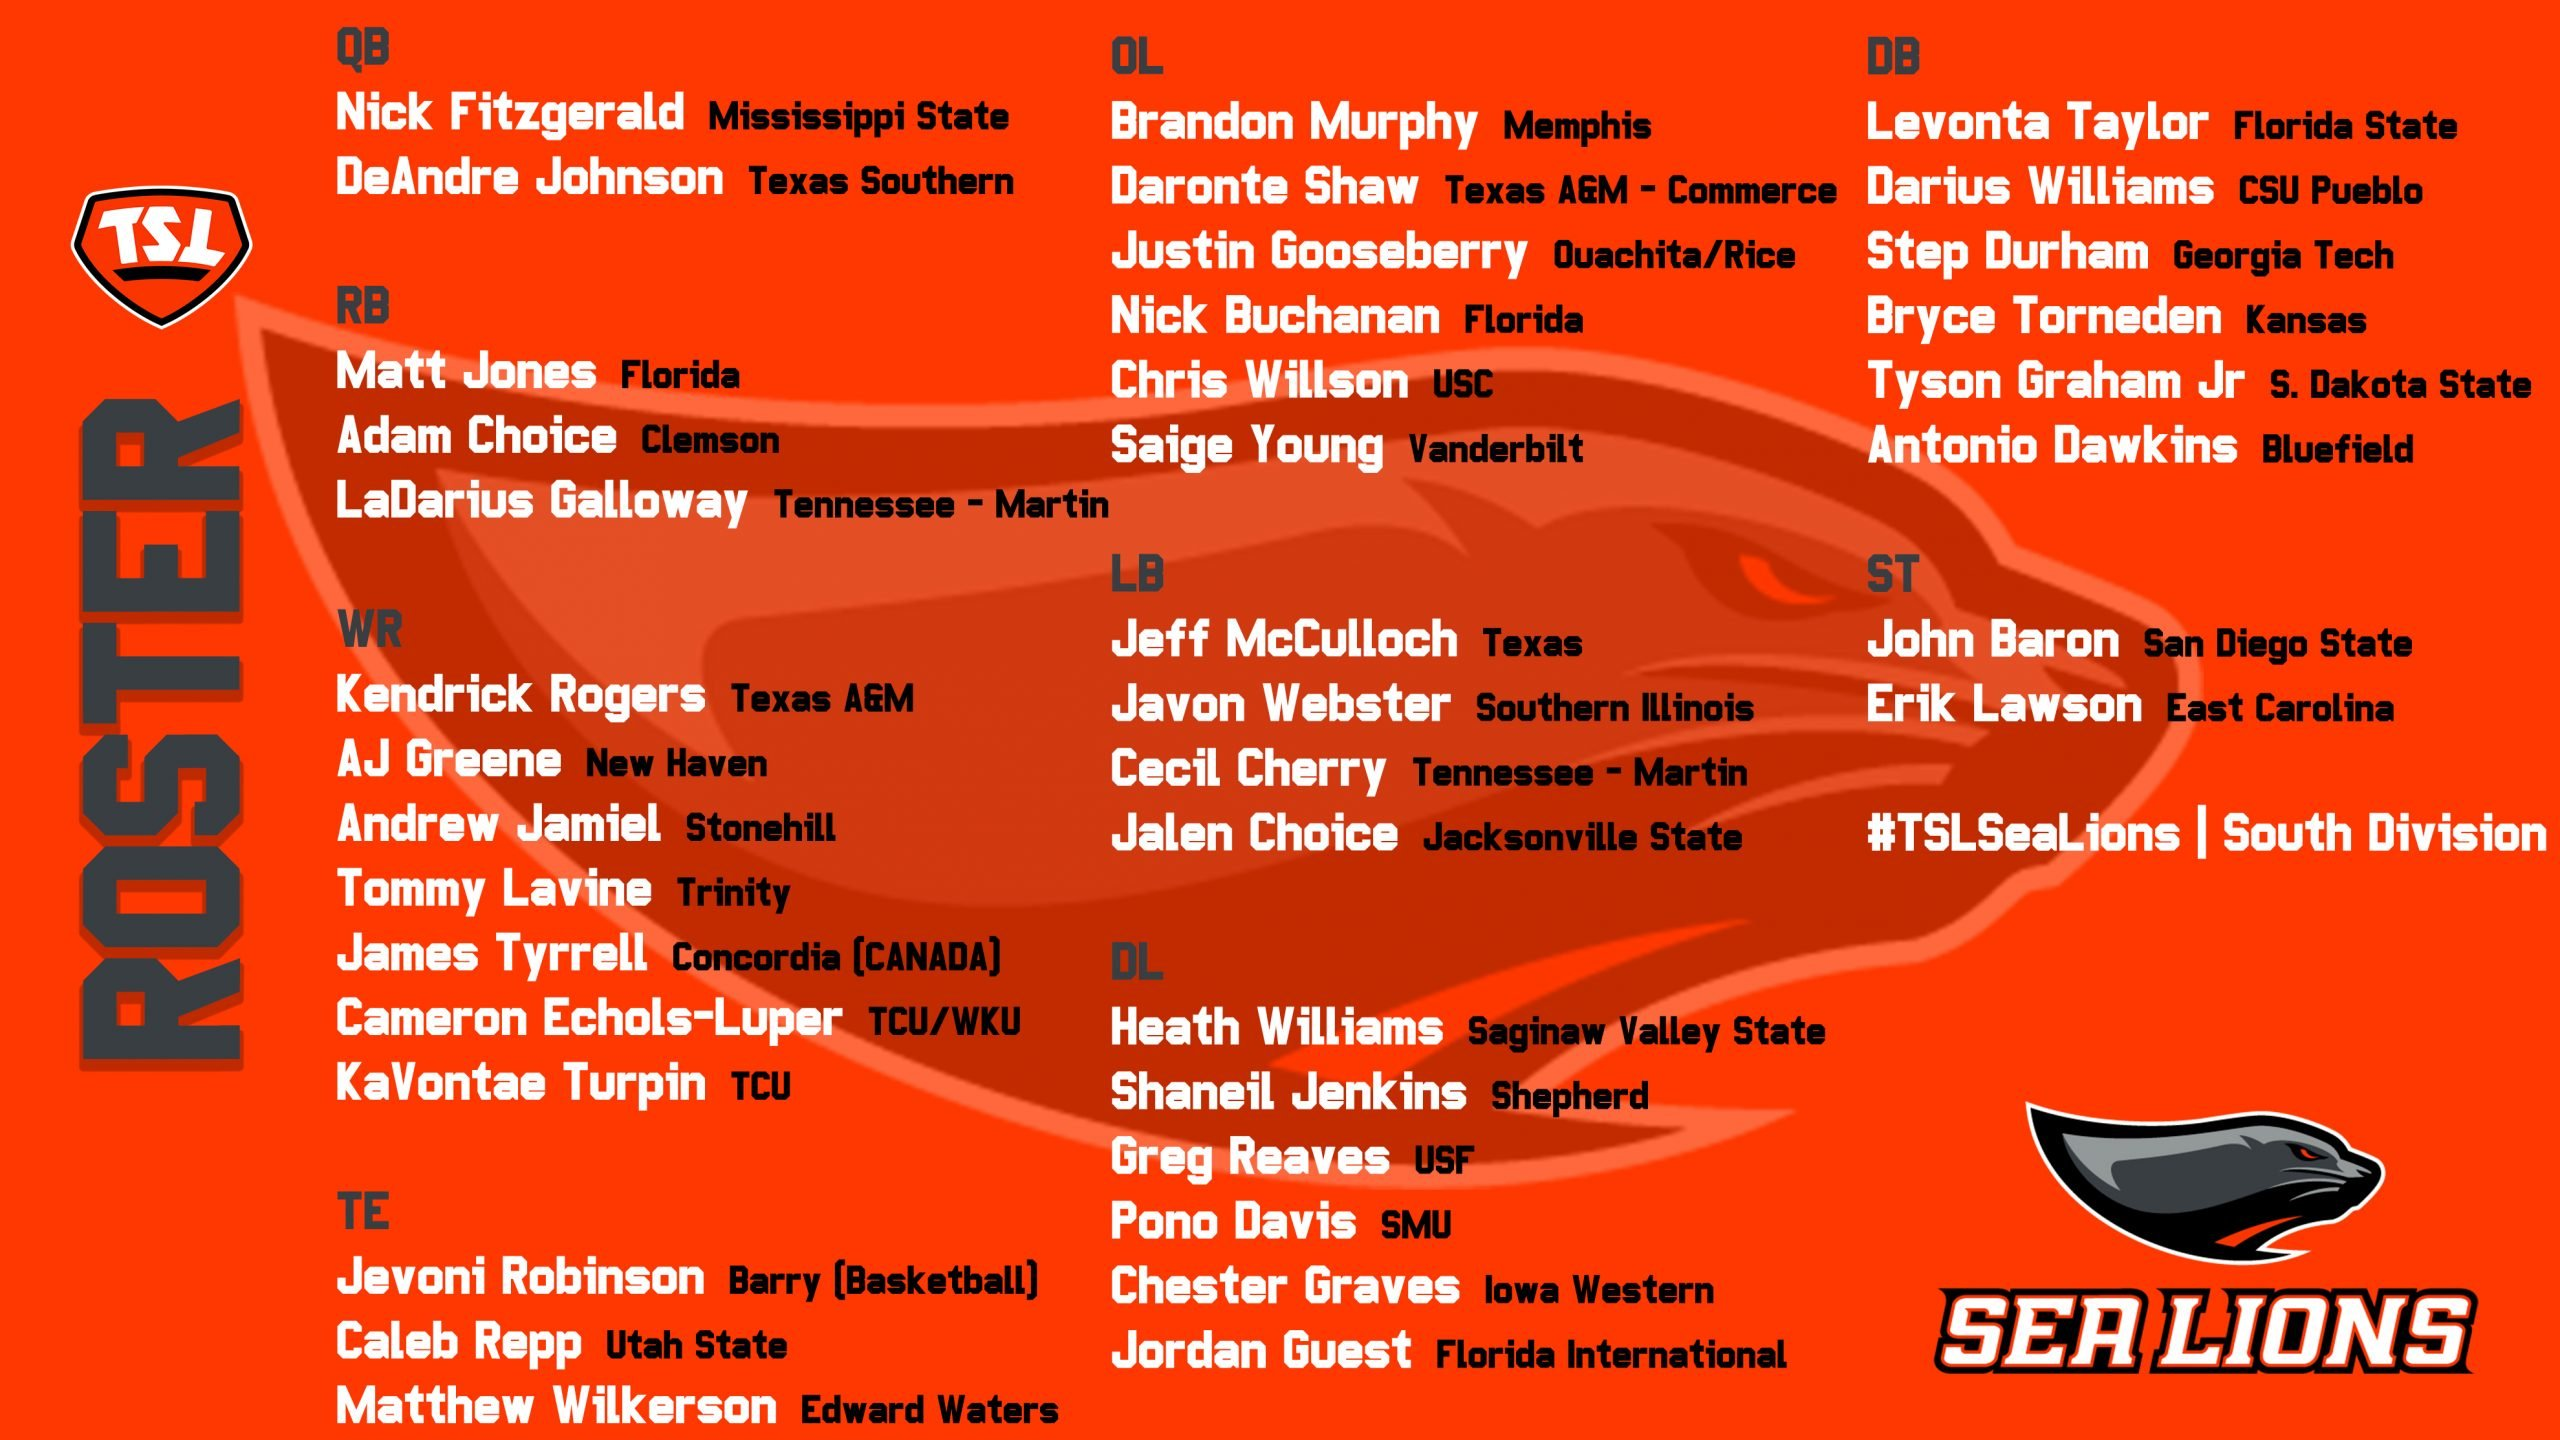 The Spring League Sea Lions 2021 Roster